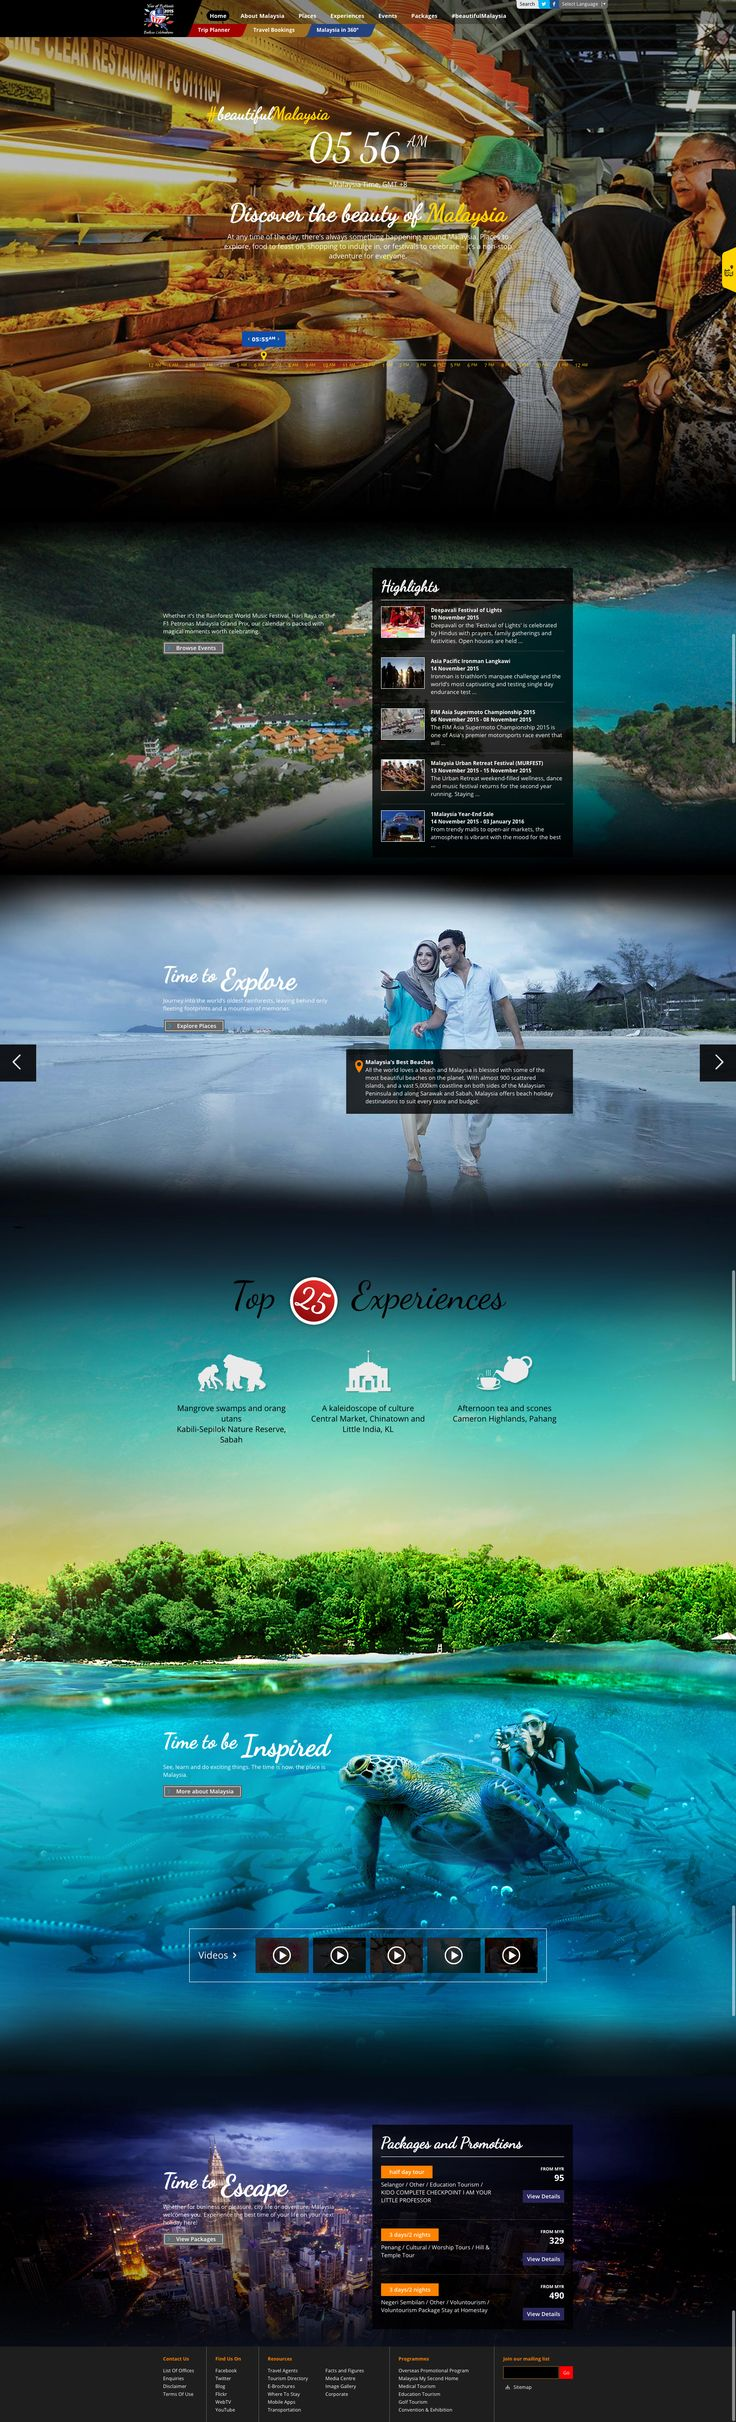 Travel Malaysia destination tourism travel website #destination #travel #tourism #webdesign